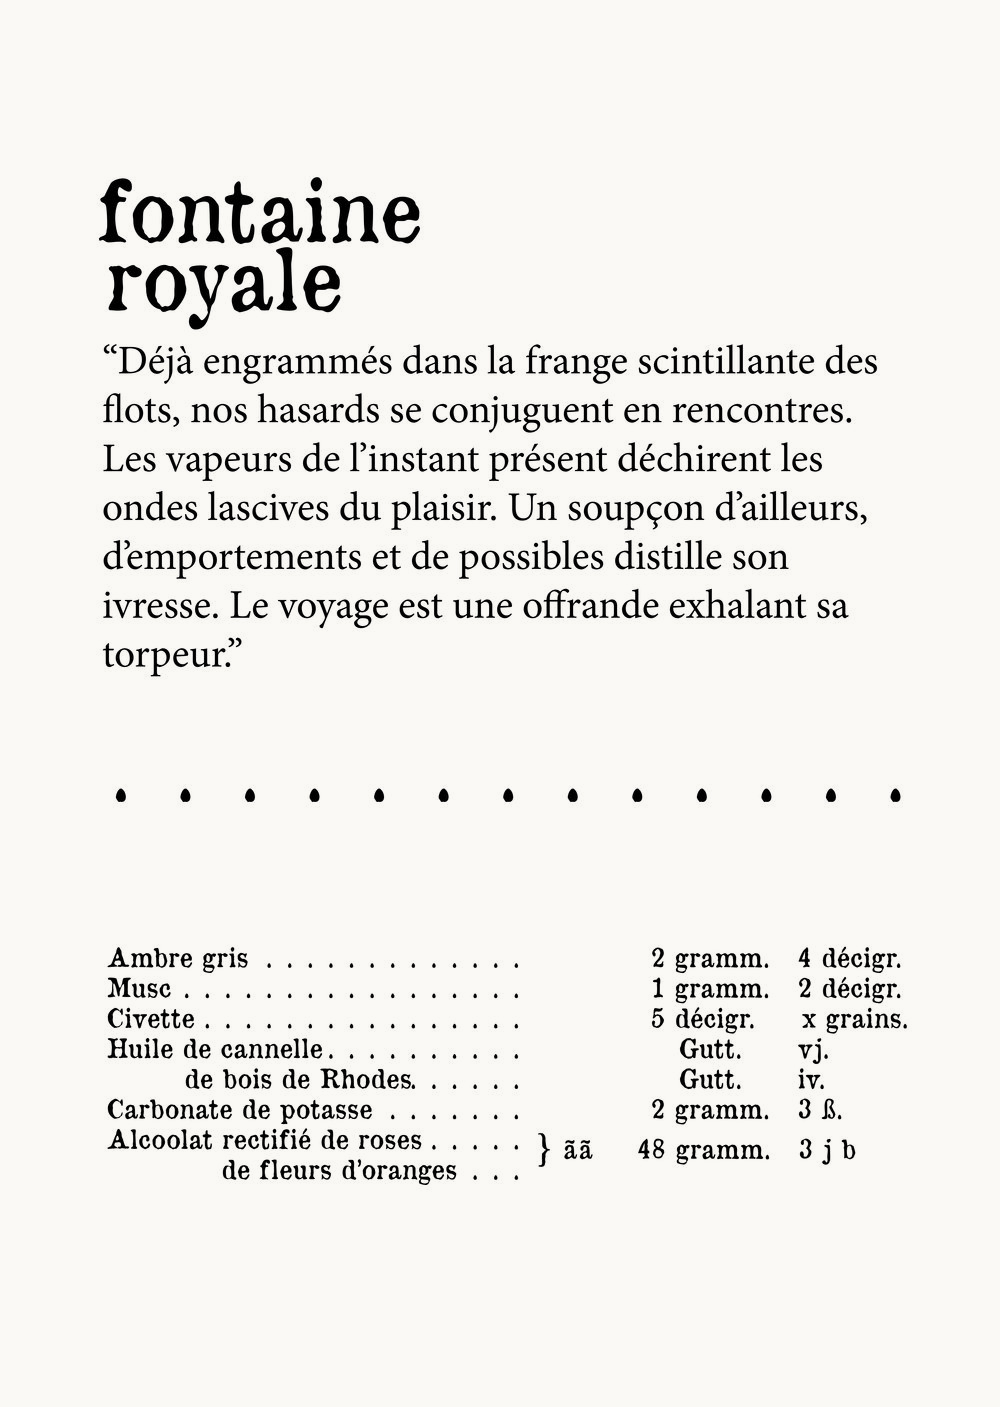 website fontaine royale fr.jpg